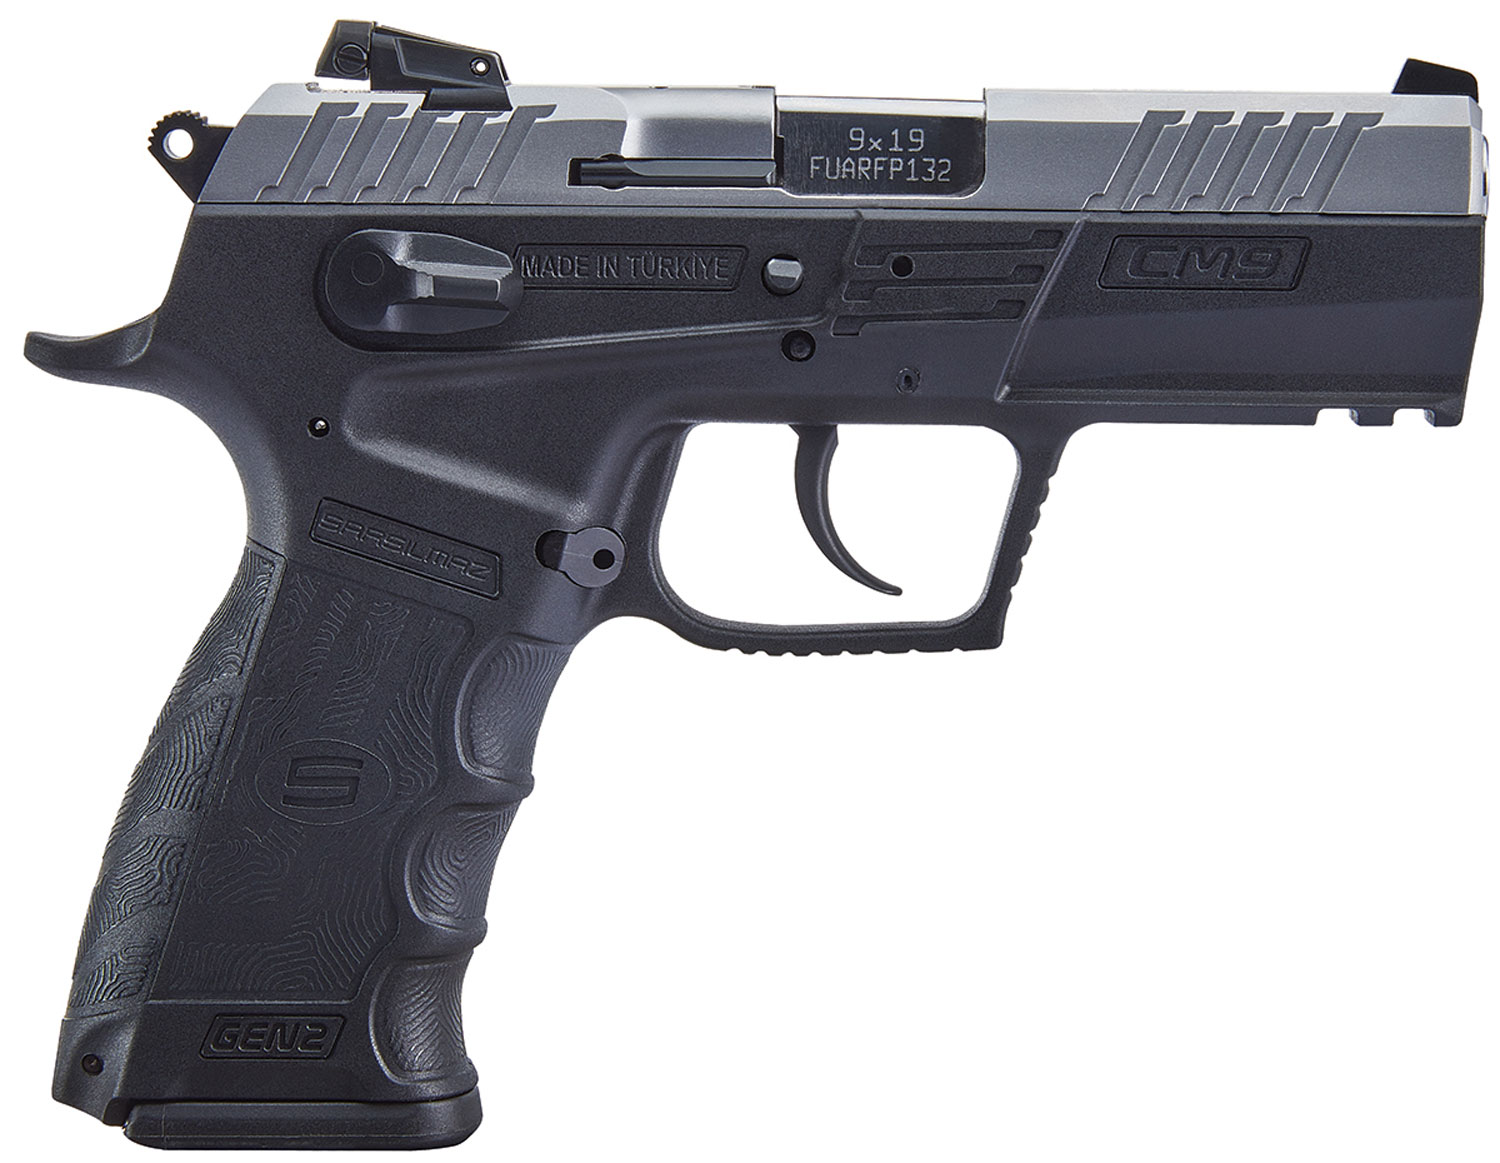 T R Imports SM9GEN2SS Sarsilmaz CM9 Gen 2 Single/Double 9mm 3.8